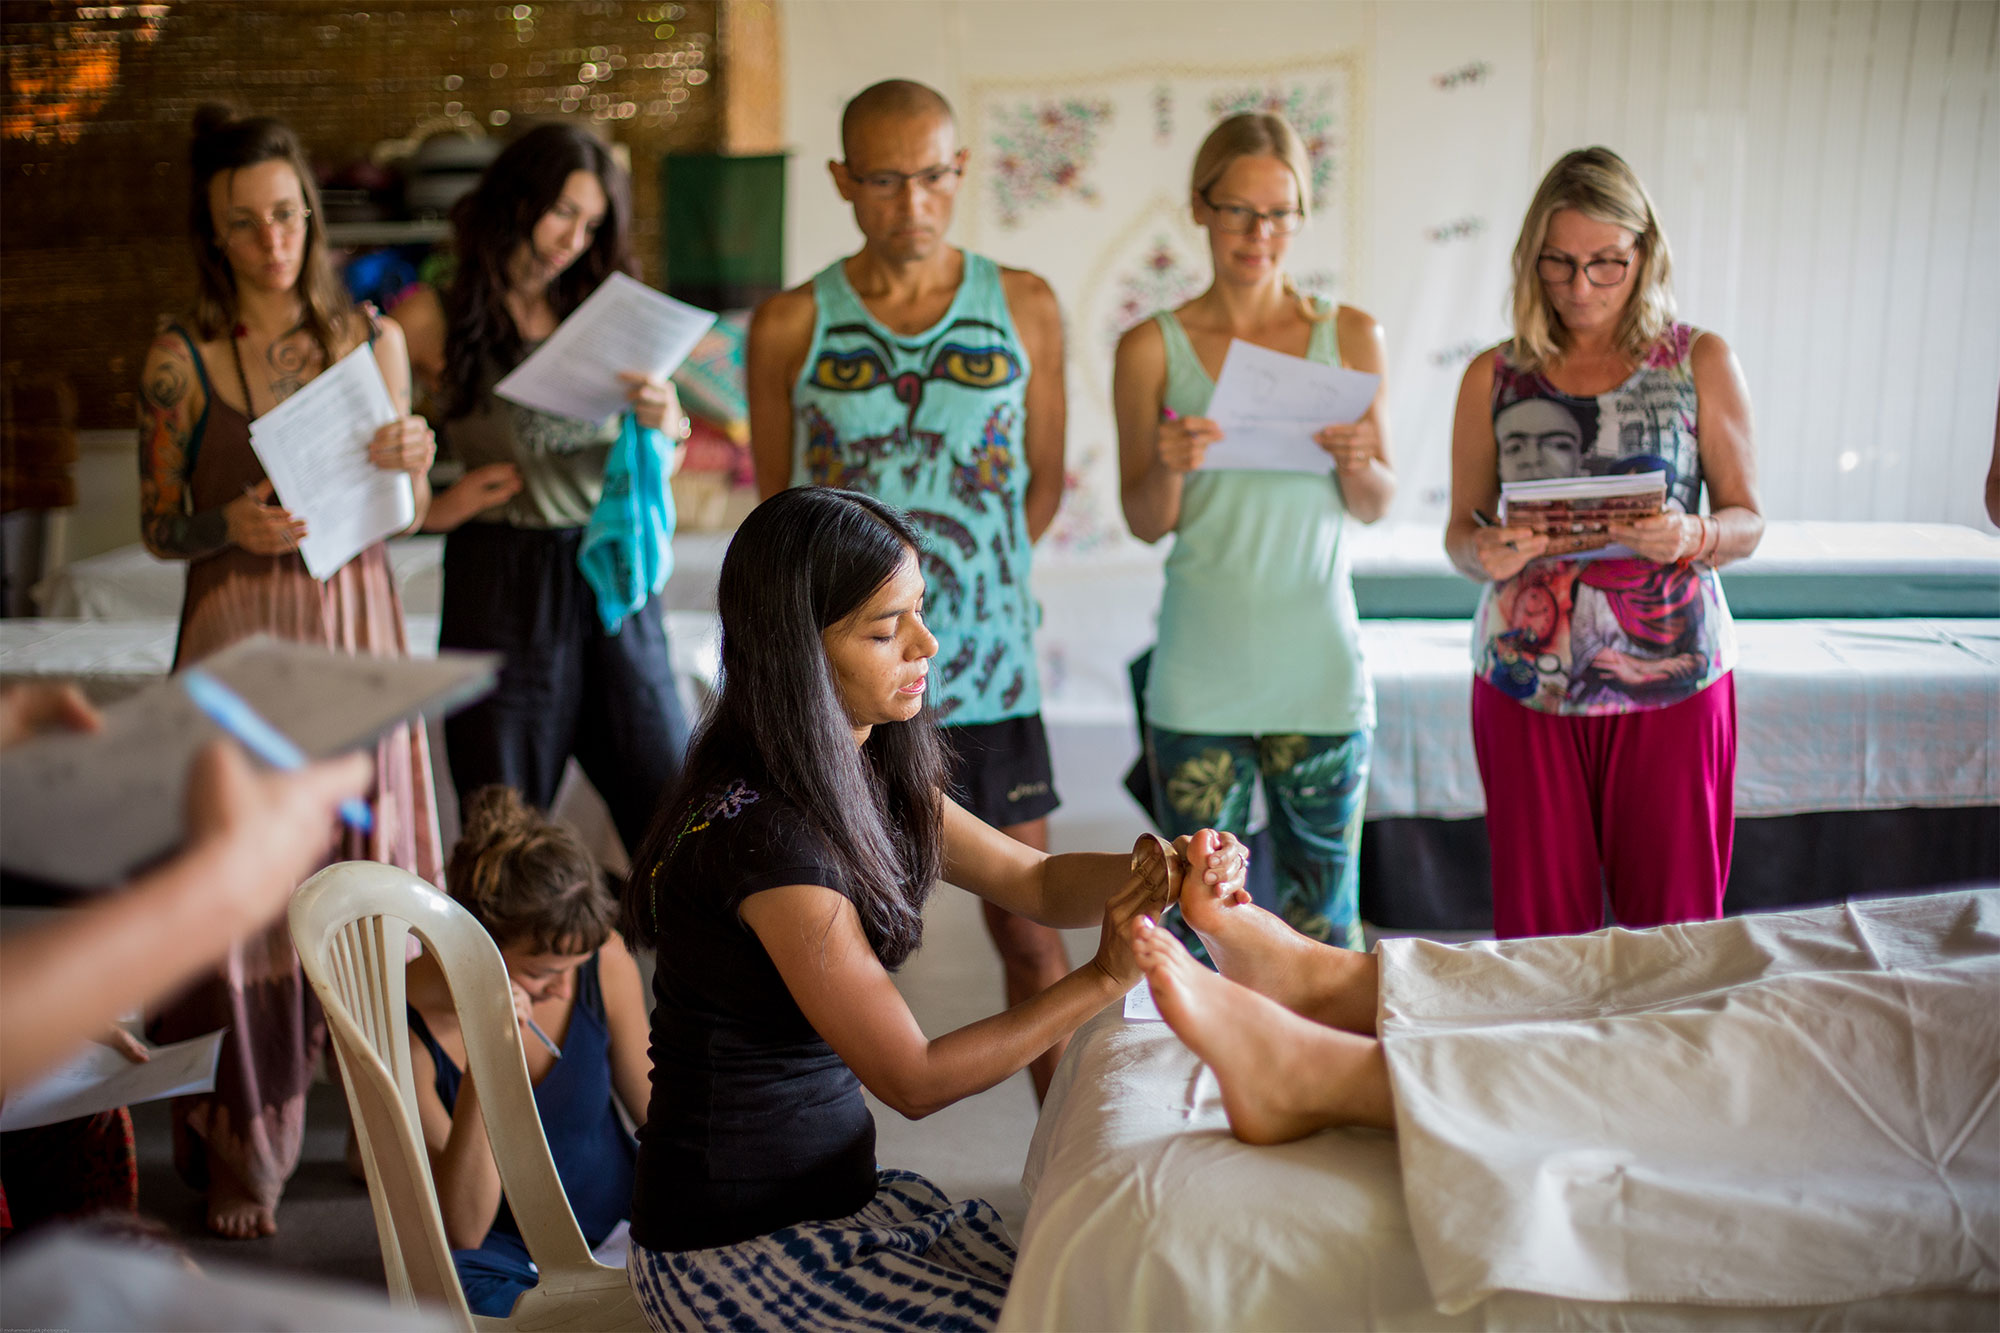 Ayurveda Massage Course in Goa, India ~ Students learning Kansu Bowl Massage from Gagori